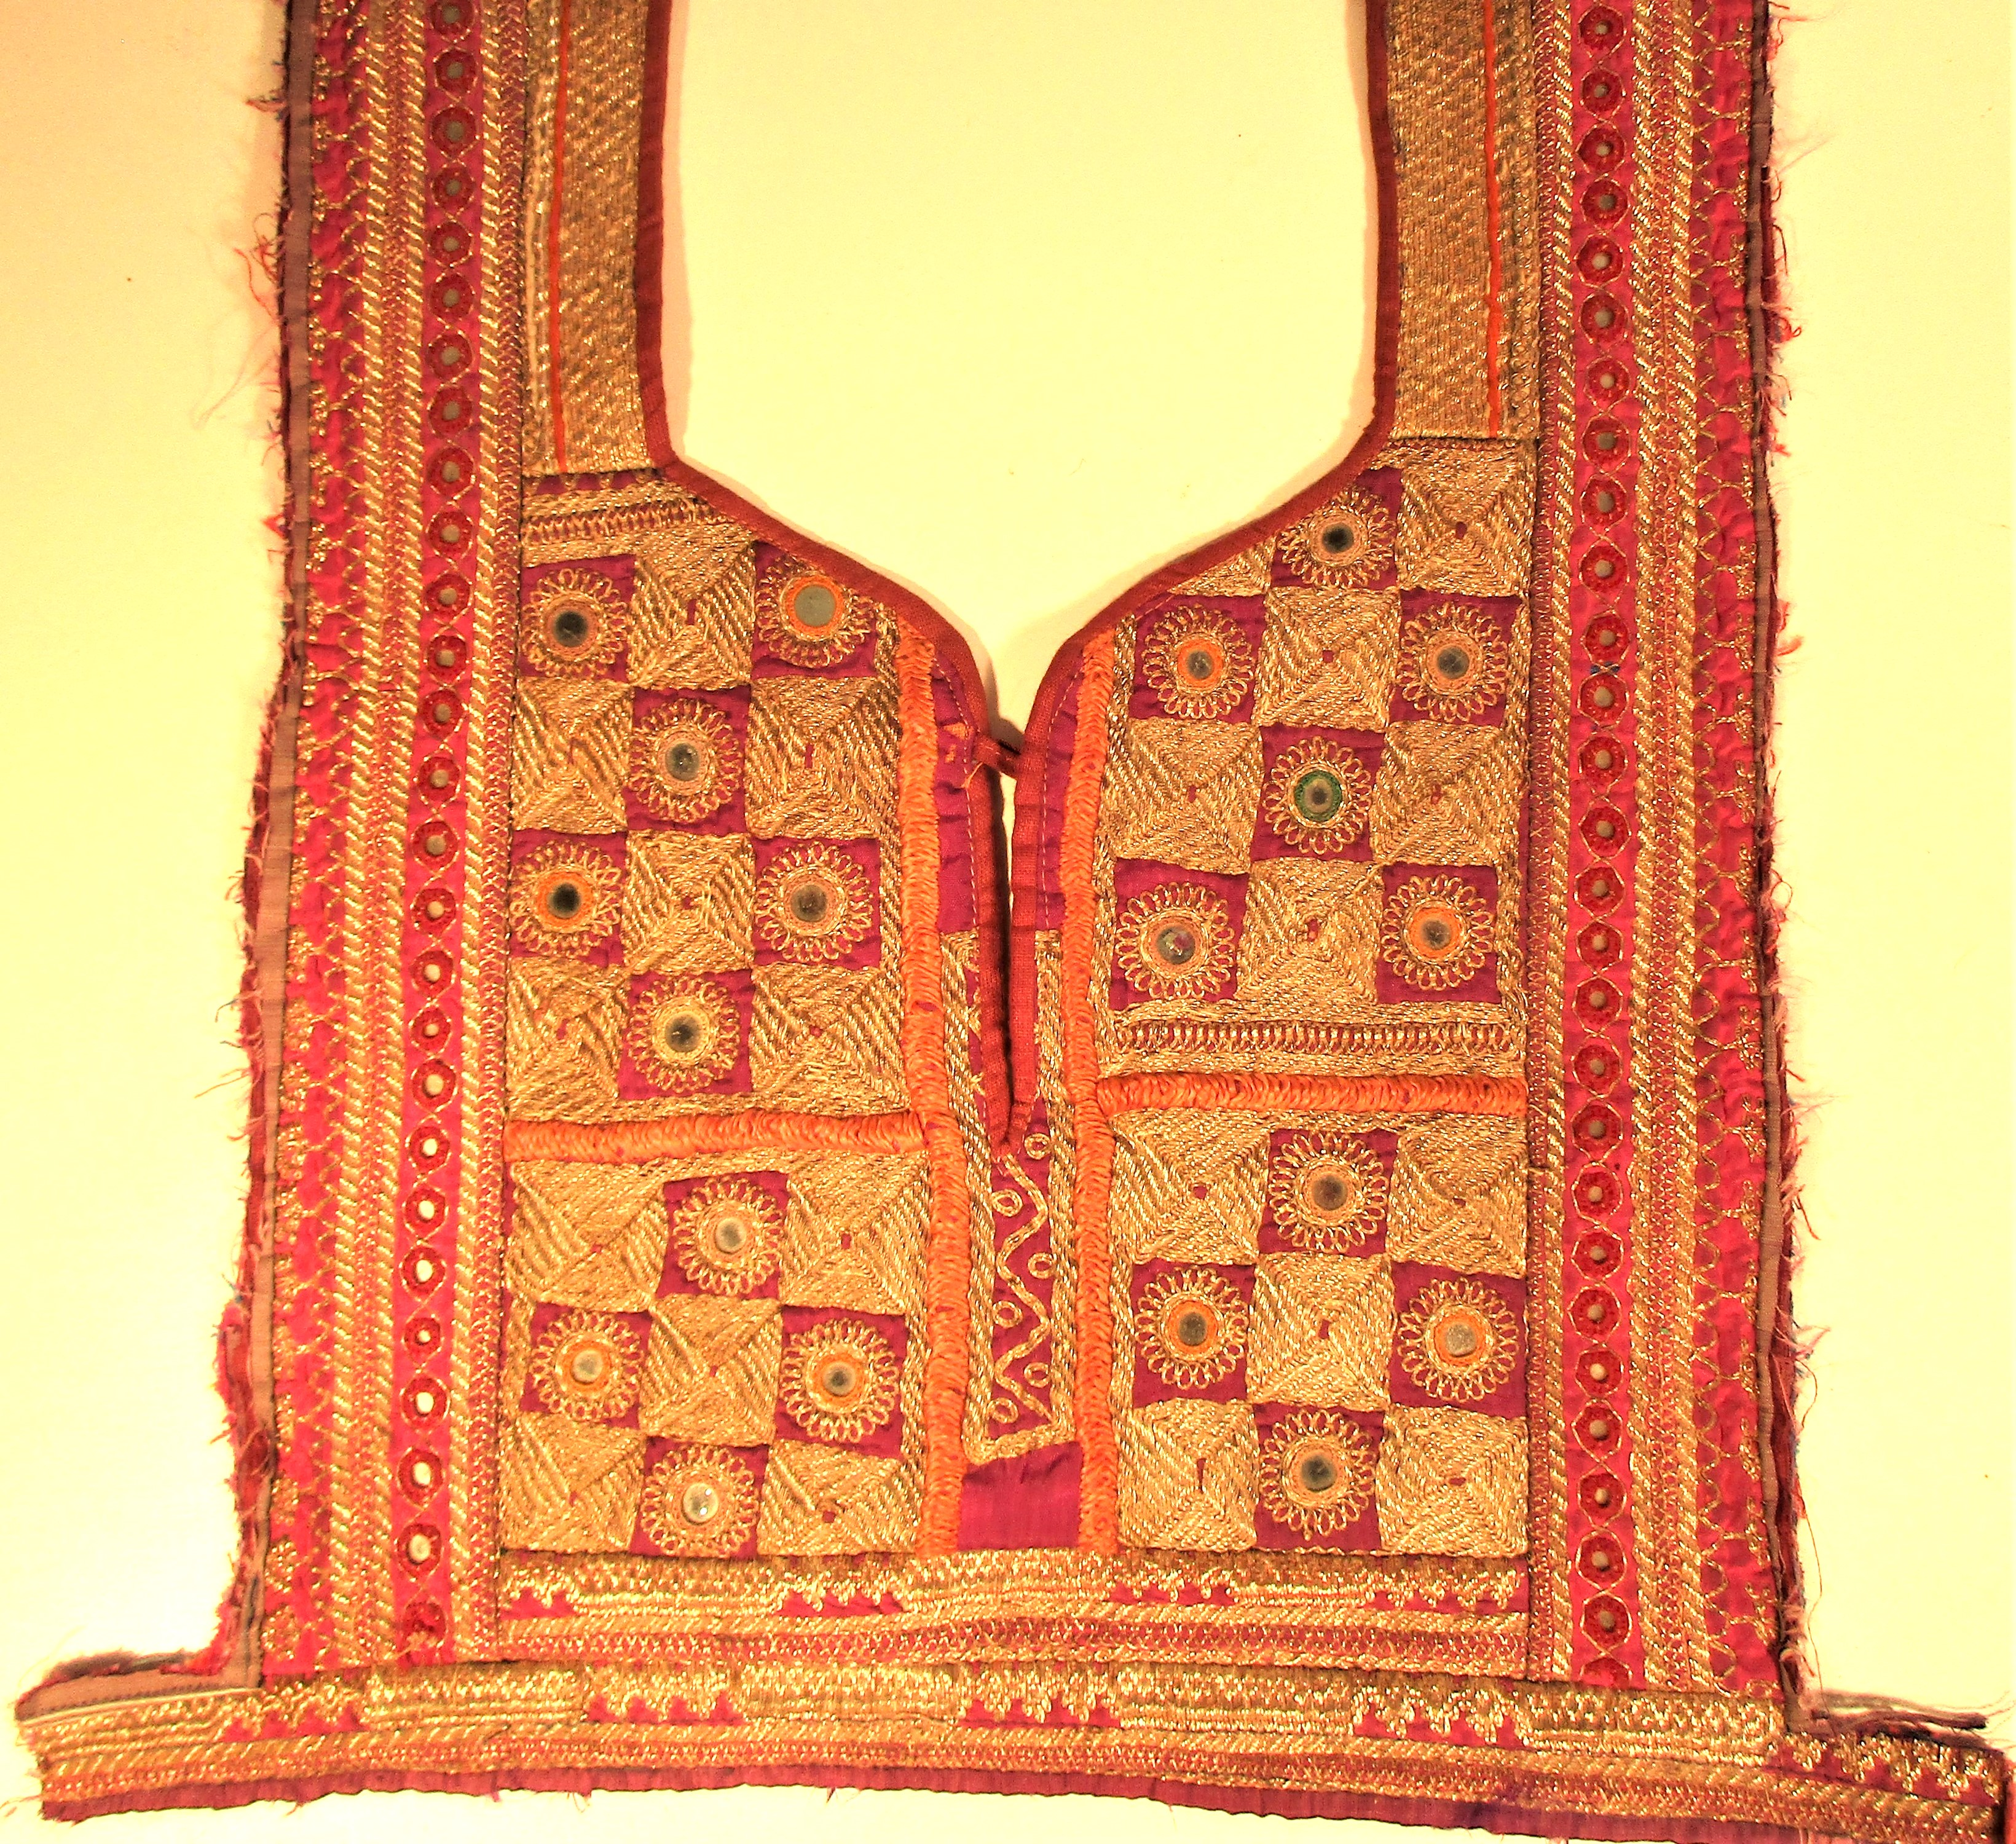 Hazara dress front. Women and children of most tribes in central Asia wear a long dress with an